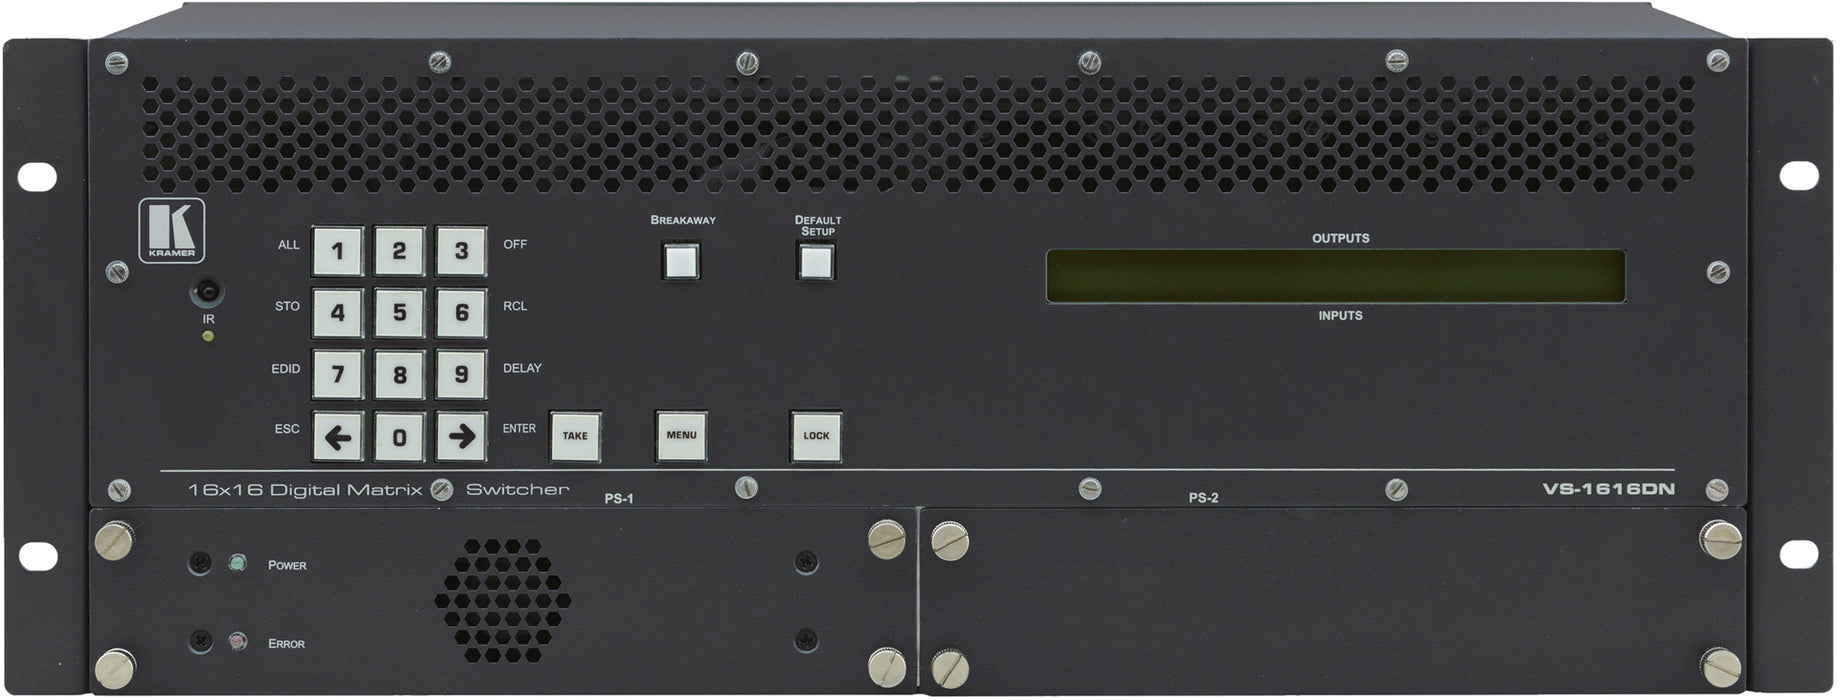 Kramer VS-1616DN-EM 2x2 to 16x16 Modular Multiformat 4K Digital Matrix Switcher